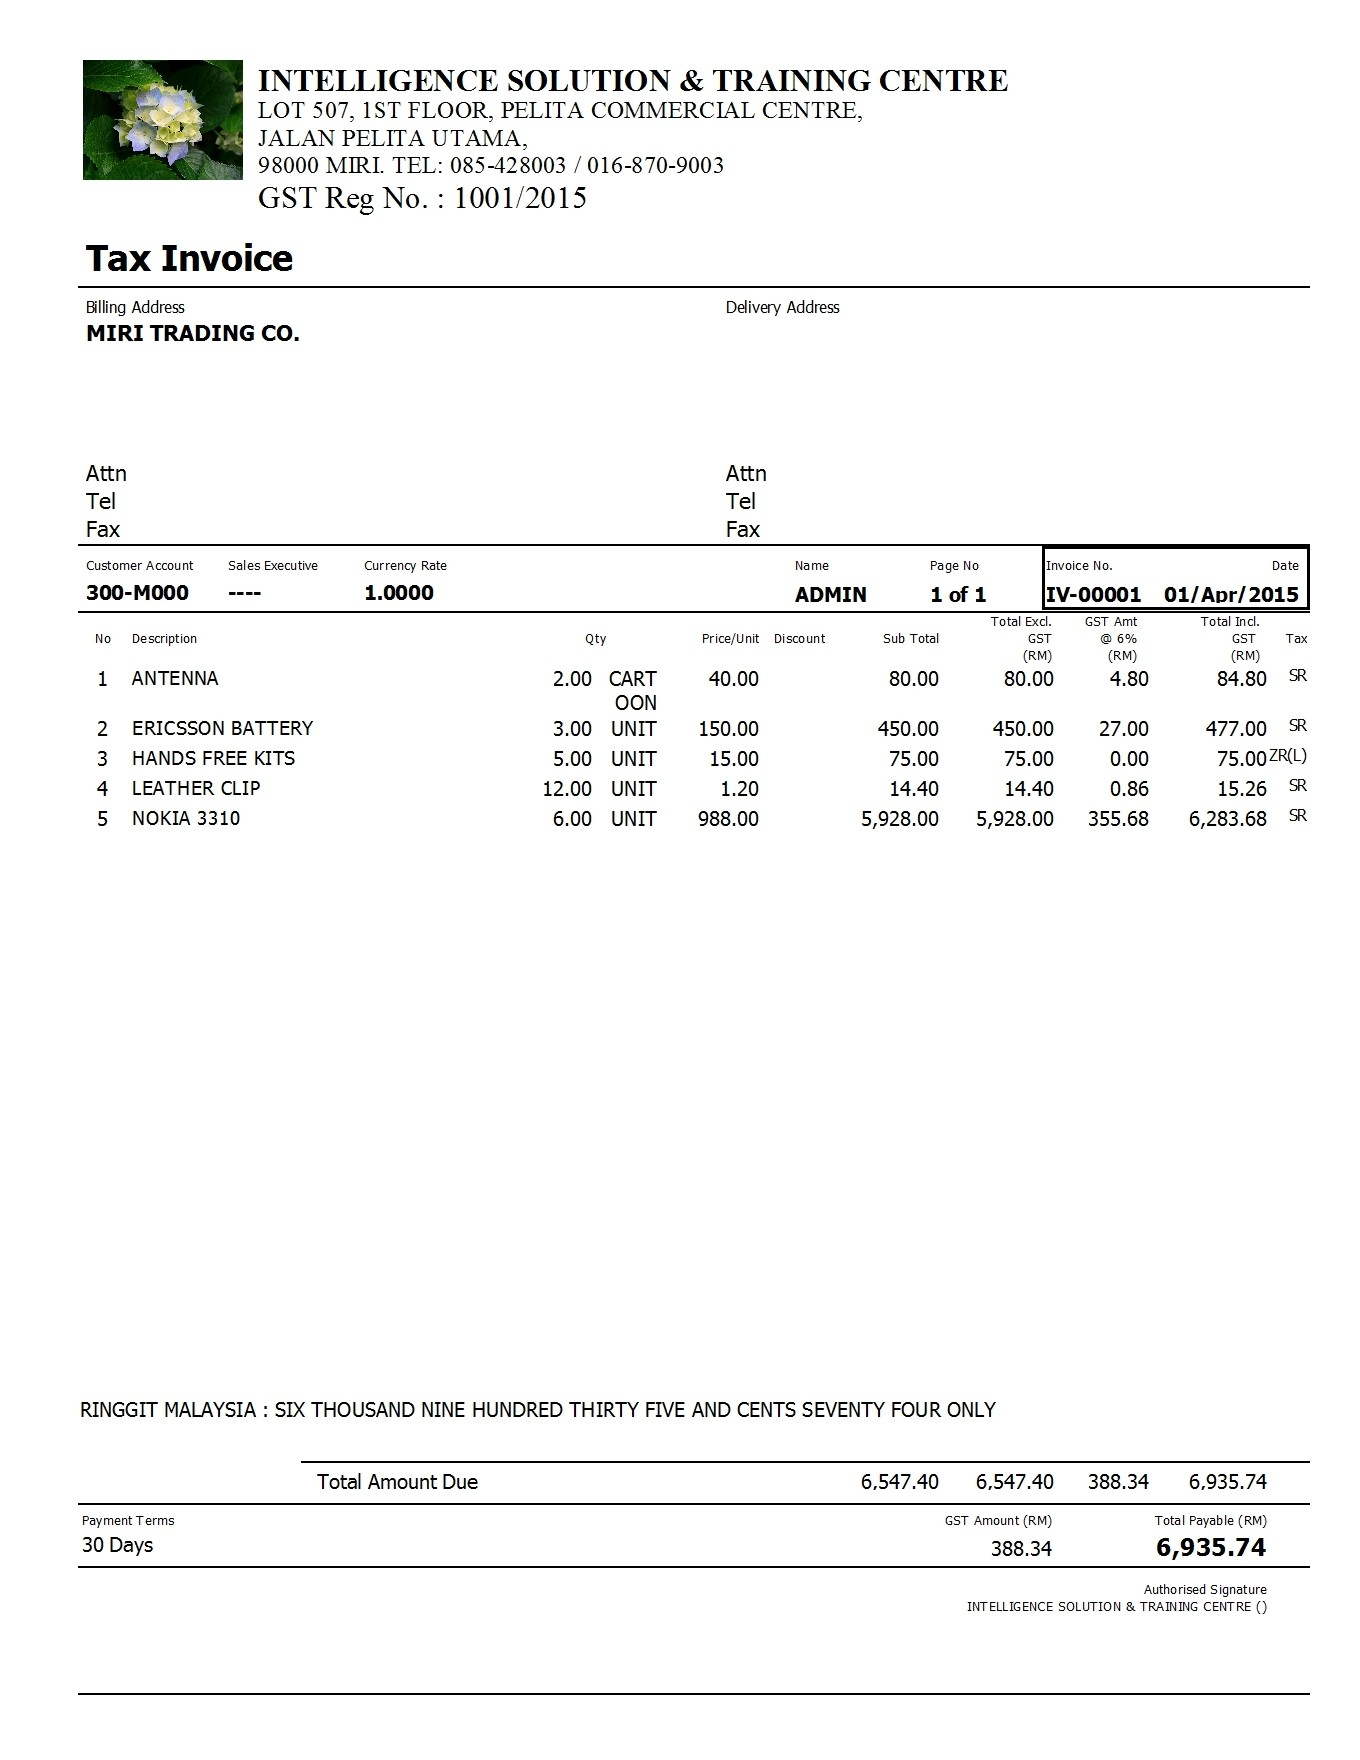 gst istc invoice template with gst